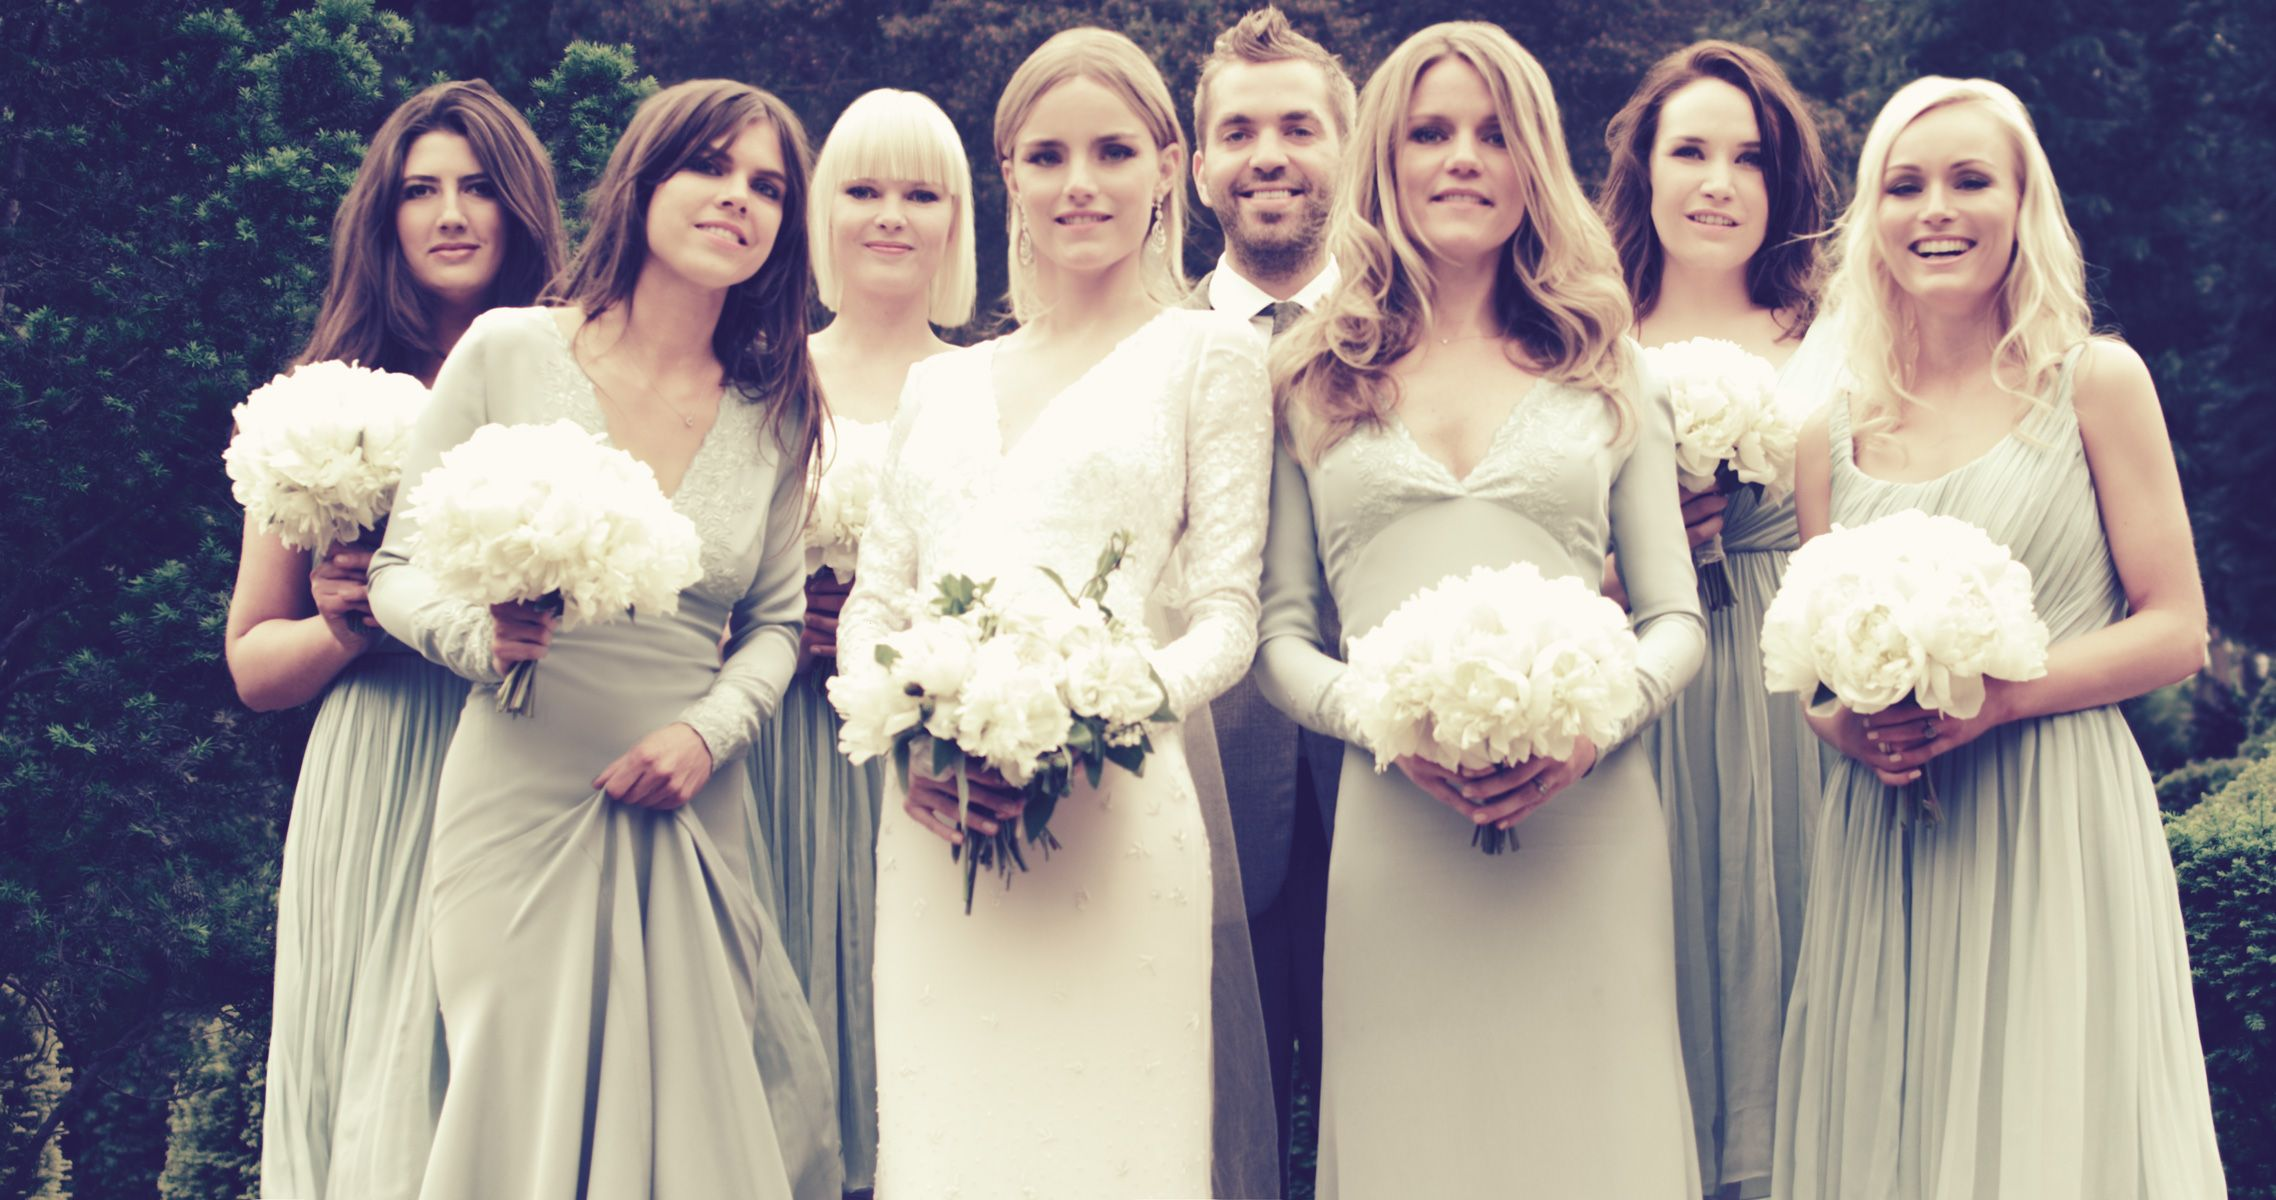 Just married the best wedding photos on vogue culture obsessed with these dresses the bridesmaids are in long light teal stella mccartney dresses the two maids of honor pictured on either side of the bride ombrellifo Images